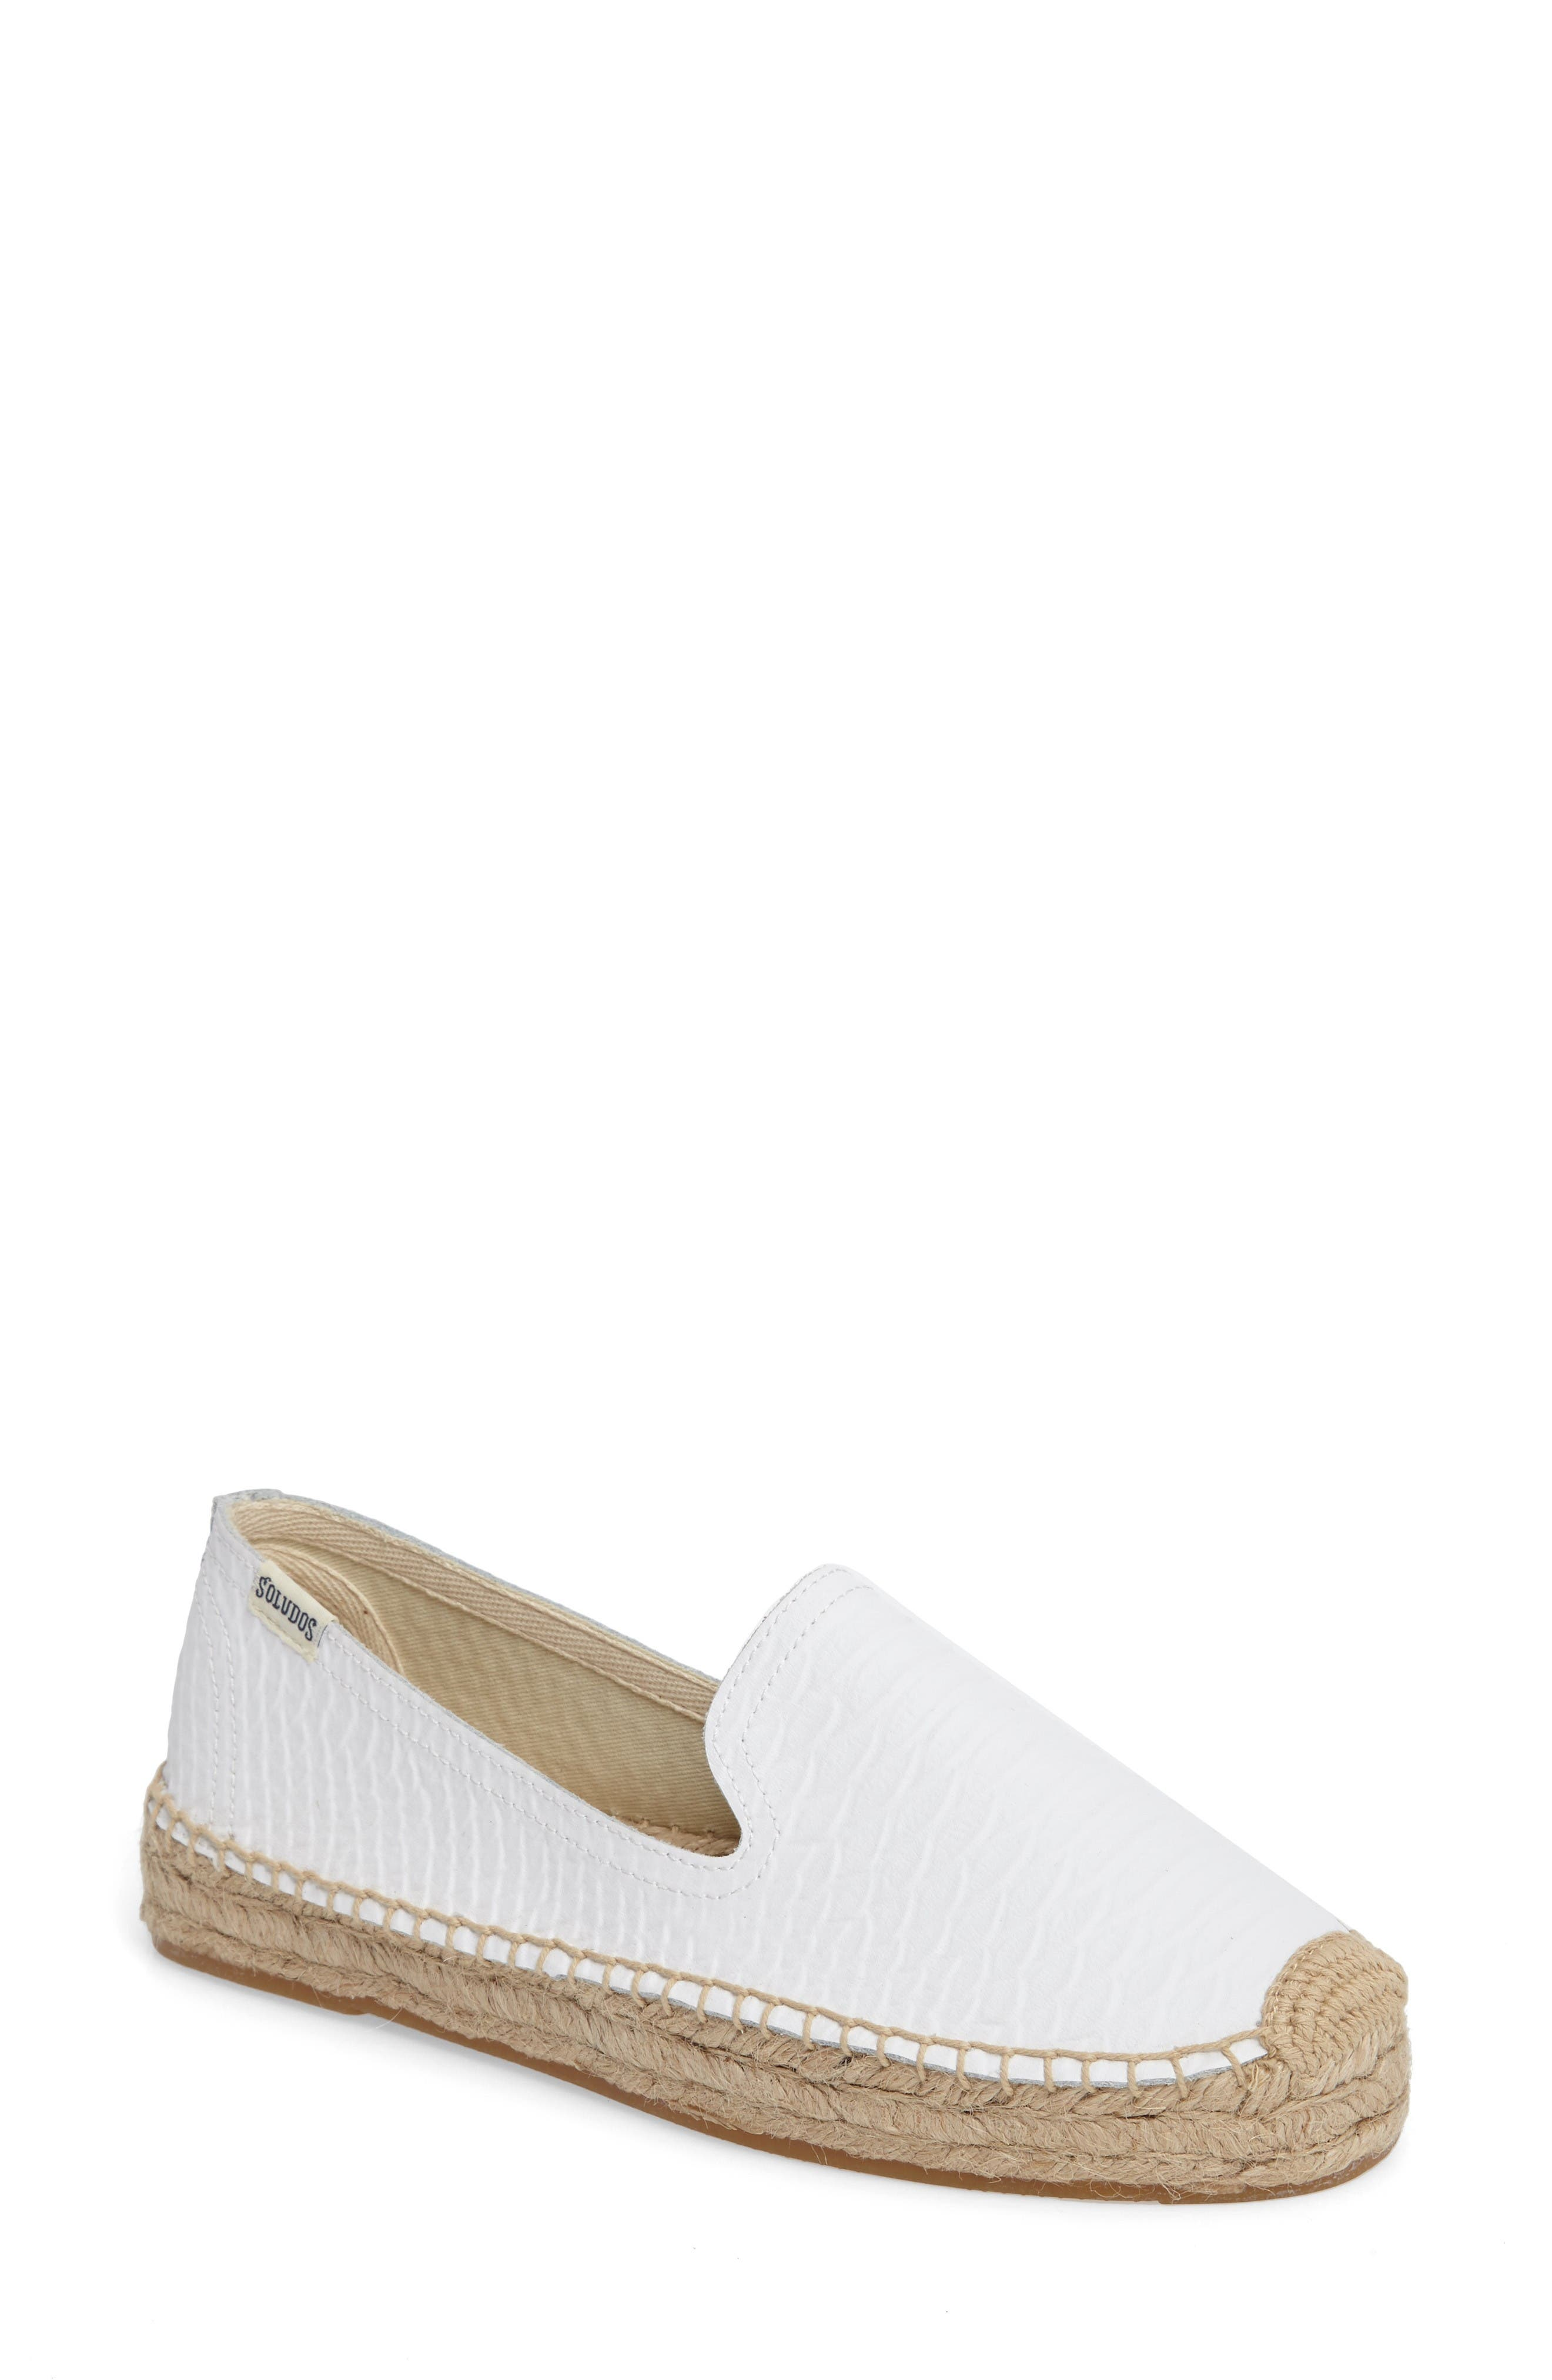 Espadrille Flat,                         Main,                         color, White Leather